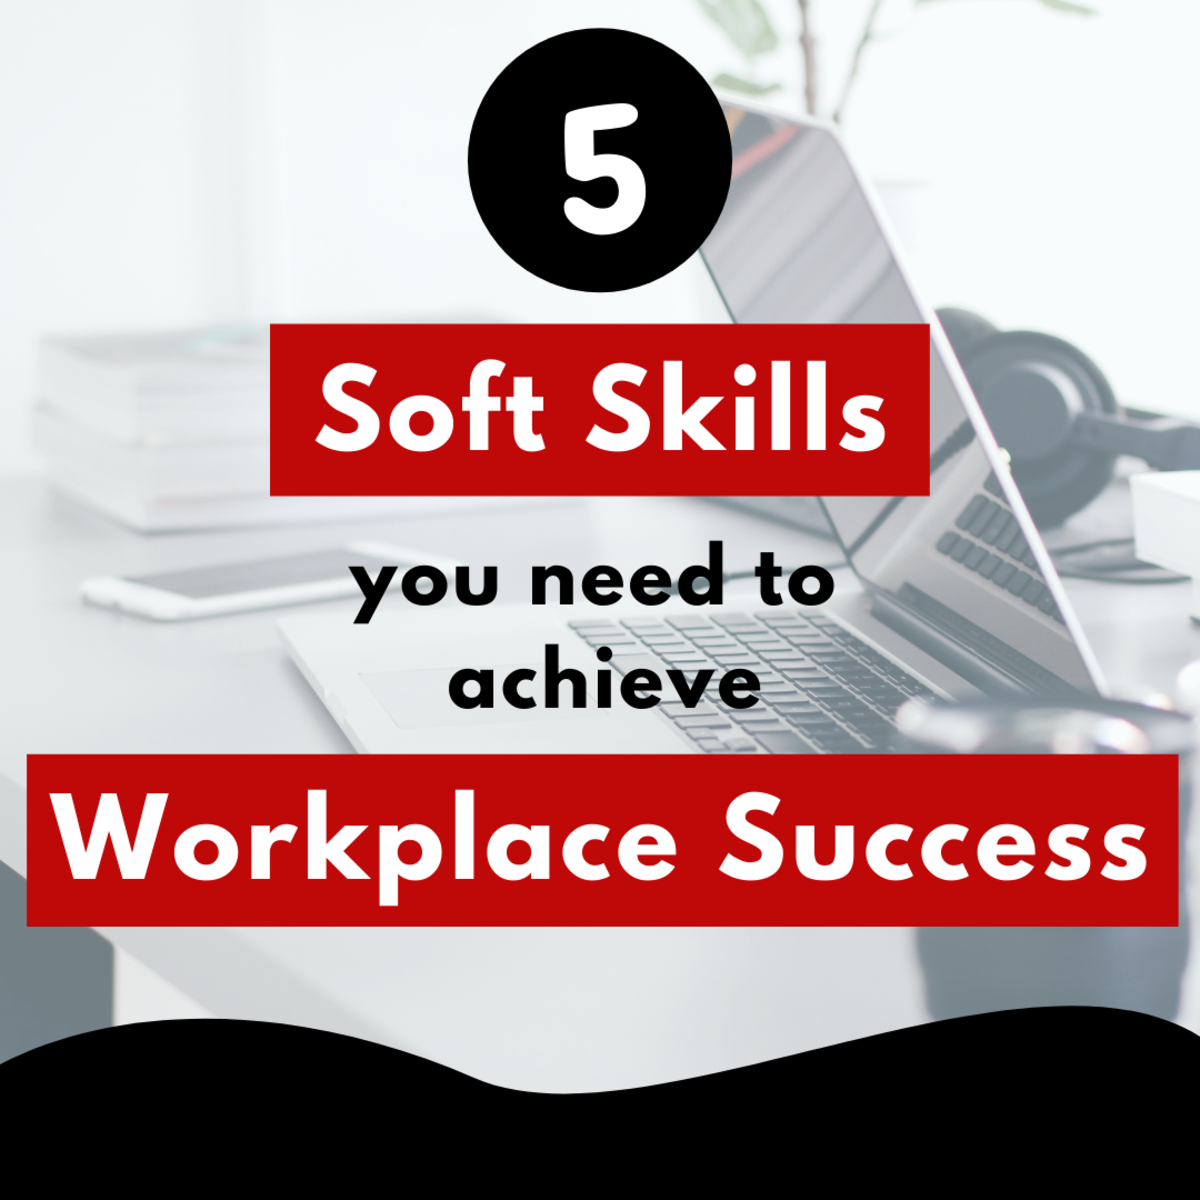 5 Soft Skills you need to Achieve Workplace Success